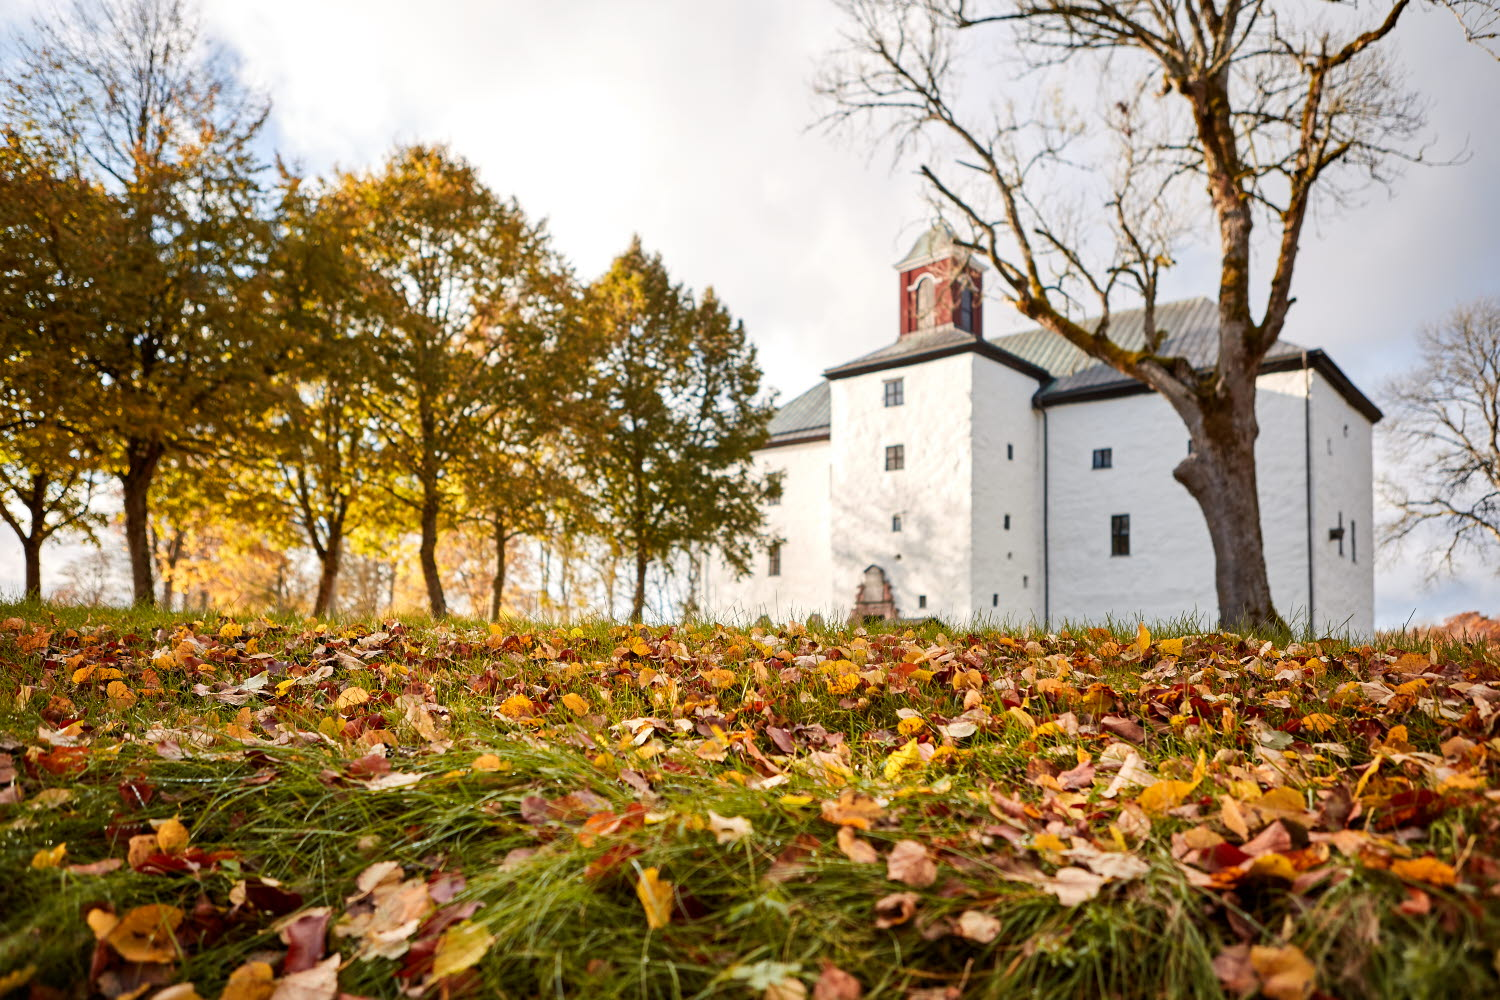 Autumn leaves in front of Torpa Stenhus - Photo Cred Jonas Ingman